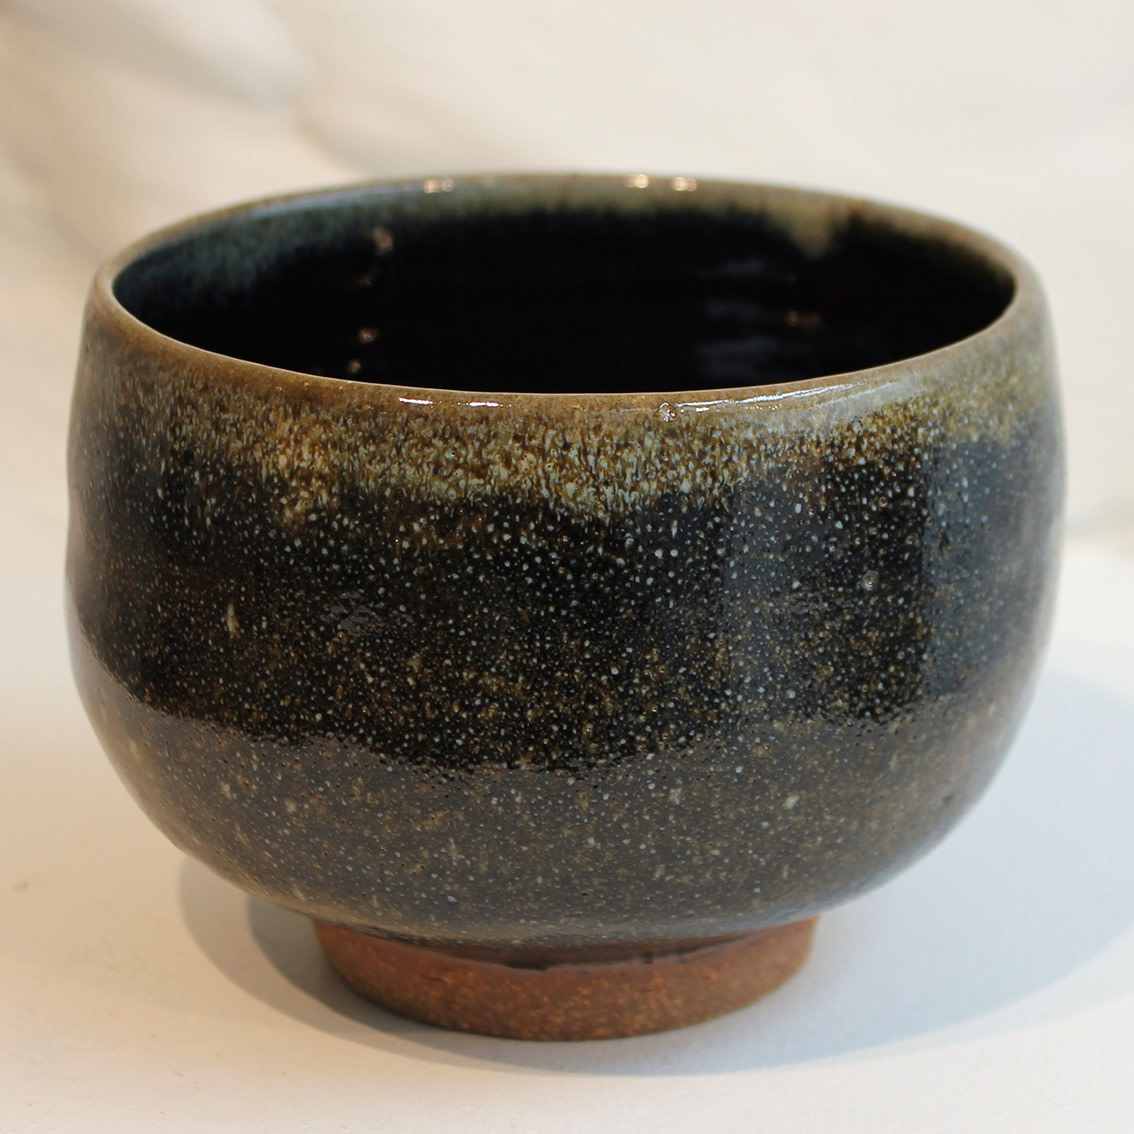 "<span class=""link fancybox-details-link""><a href=""/artists/200-matthew-tyas/works/5452-matthew-tyas-starling-chawan-bowl-2018/"">View Detail Page</a></span><div class=""artist""><strong>Matthew Tyas</strong></div> <div class=""title""><em>Starling Chawan Bowl</em>, 2018</div> <div class=""signed_and_dated"">stamped by the artist</div> <div class=""medium"">glazed thrown stoneware</div><div class=""copyright_line"">Copyright The Artist</div>"